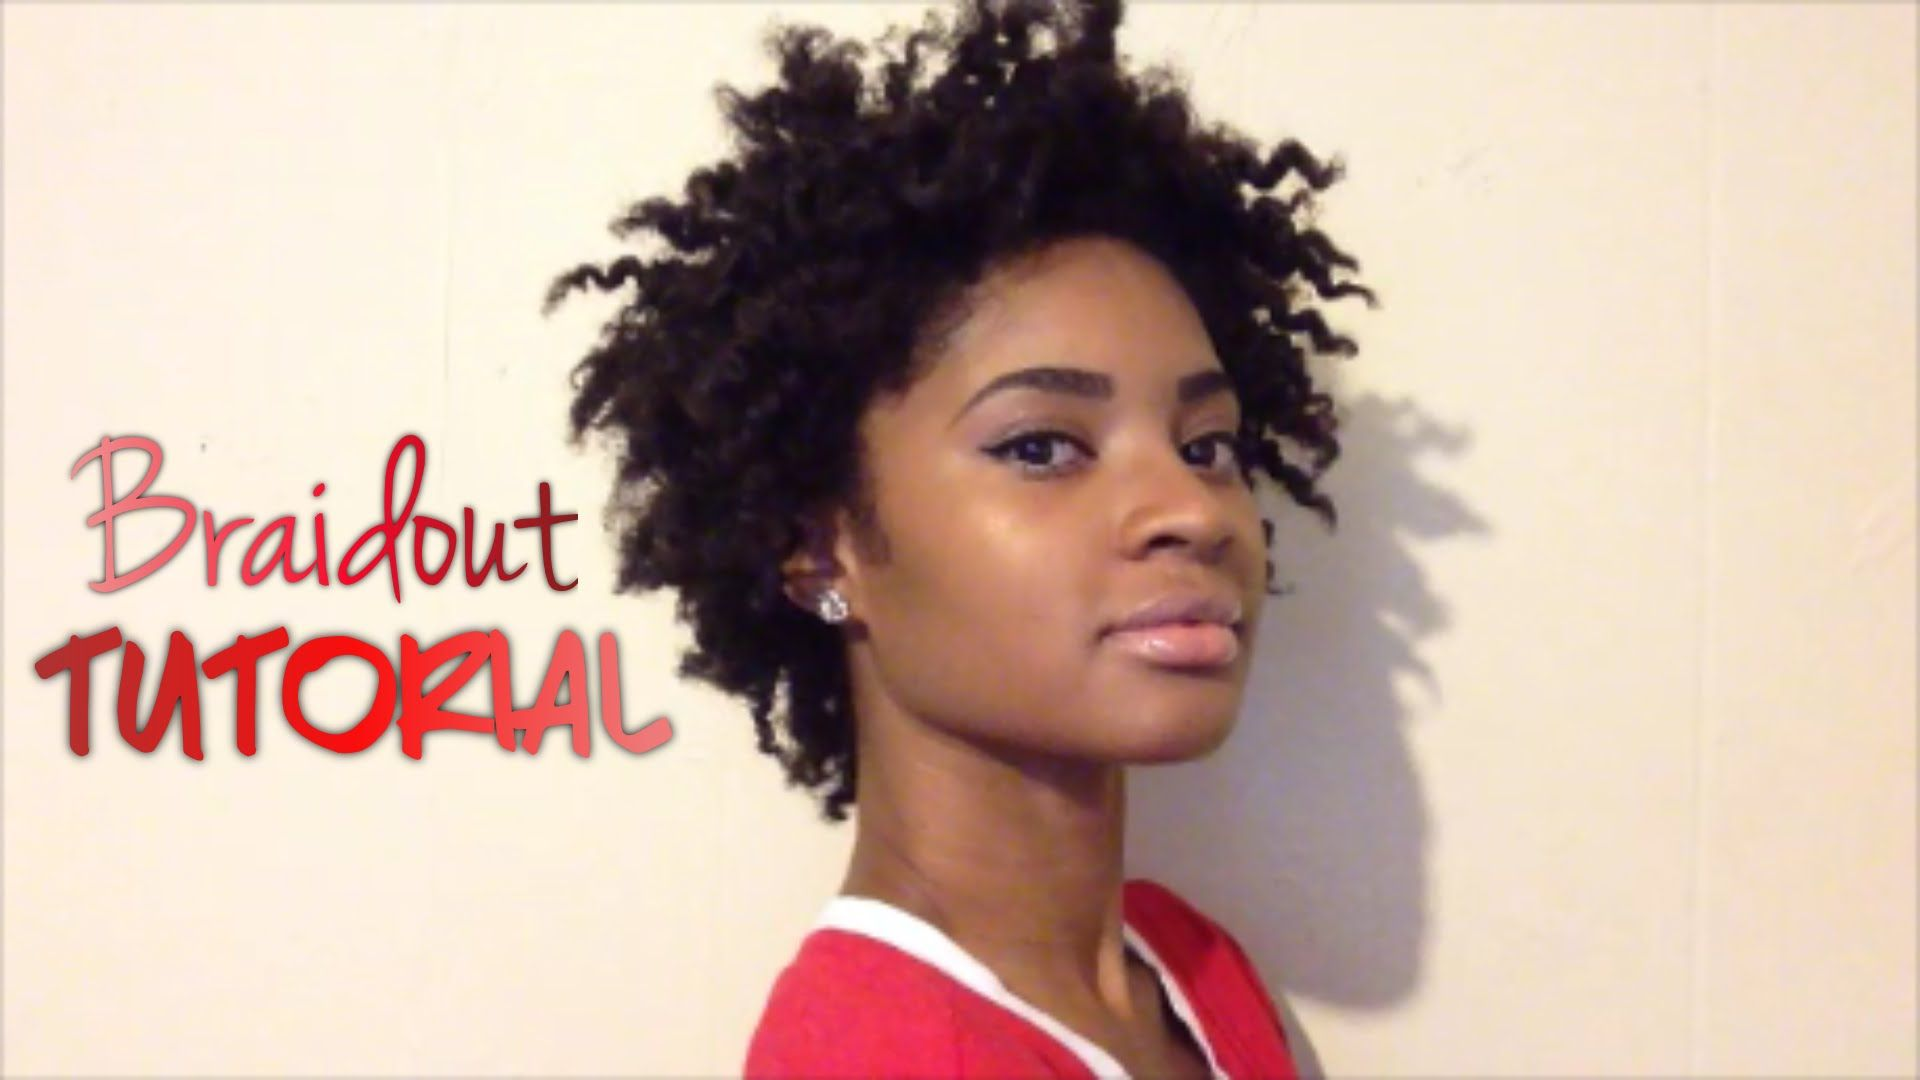 Braidout on short natural hair natural hair pinterest short